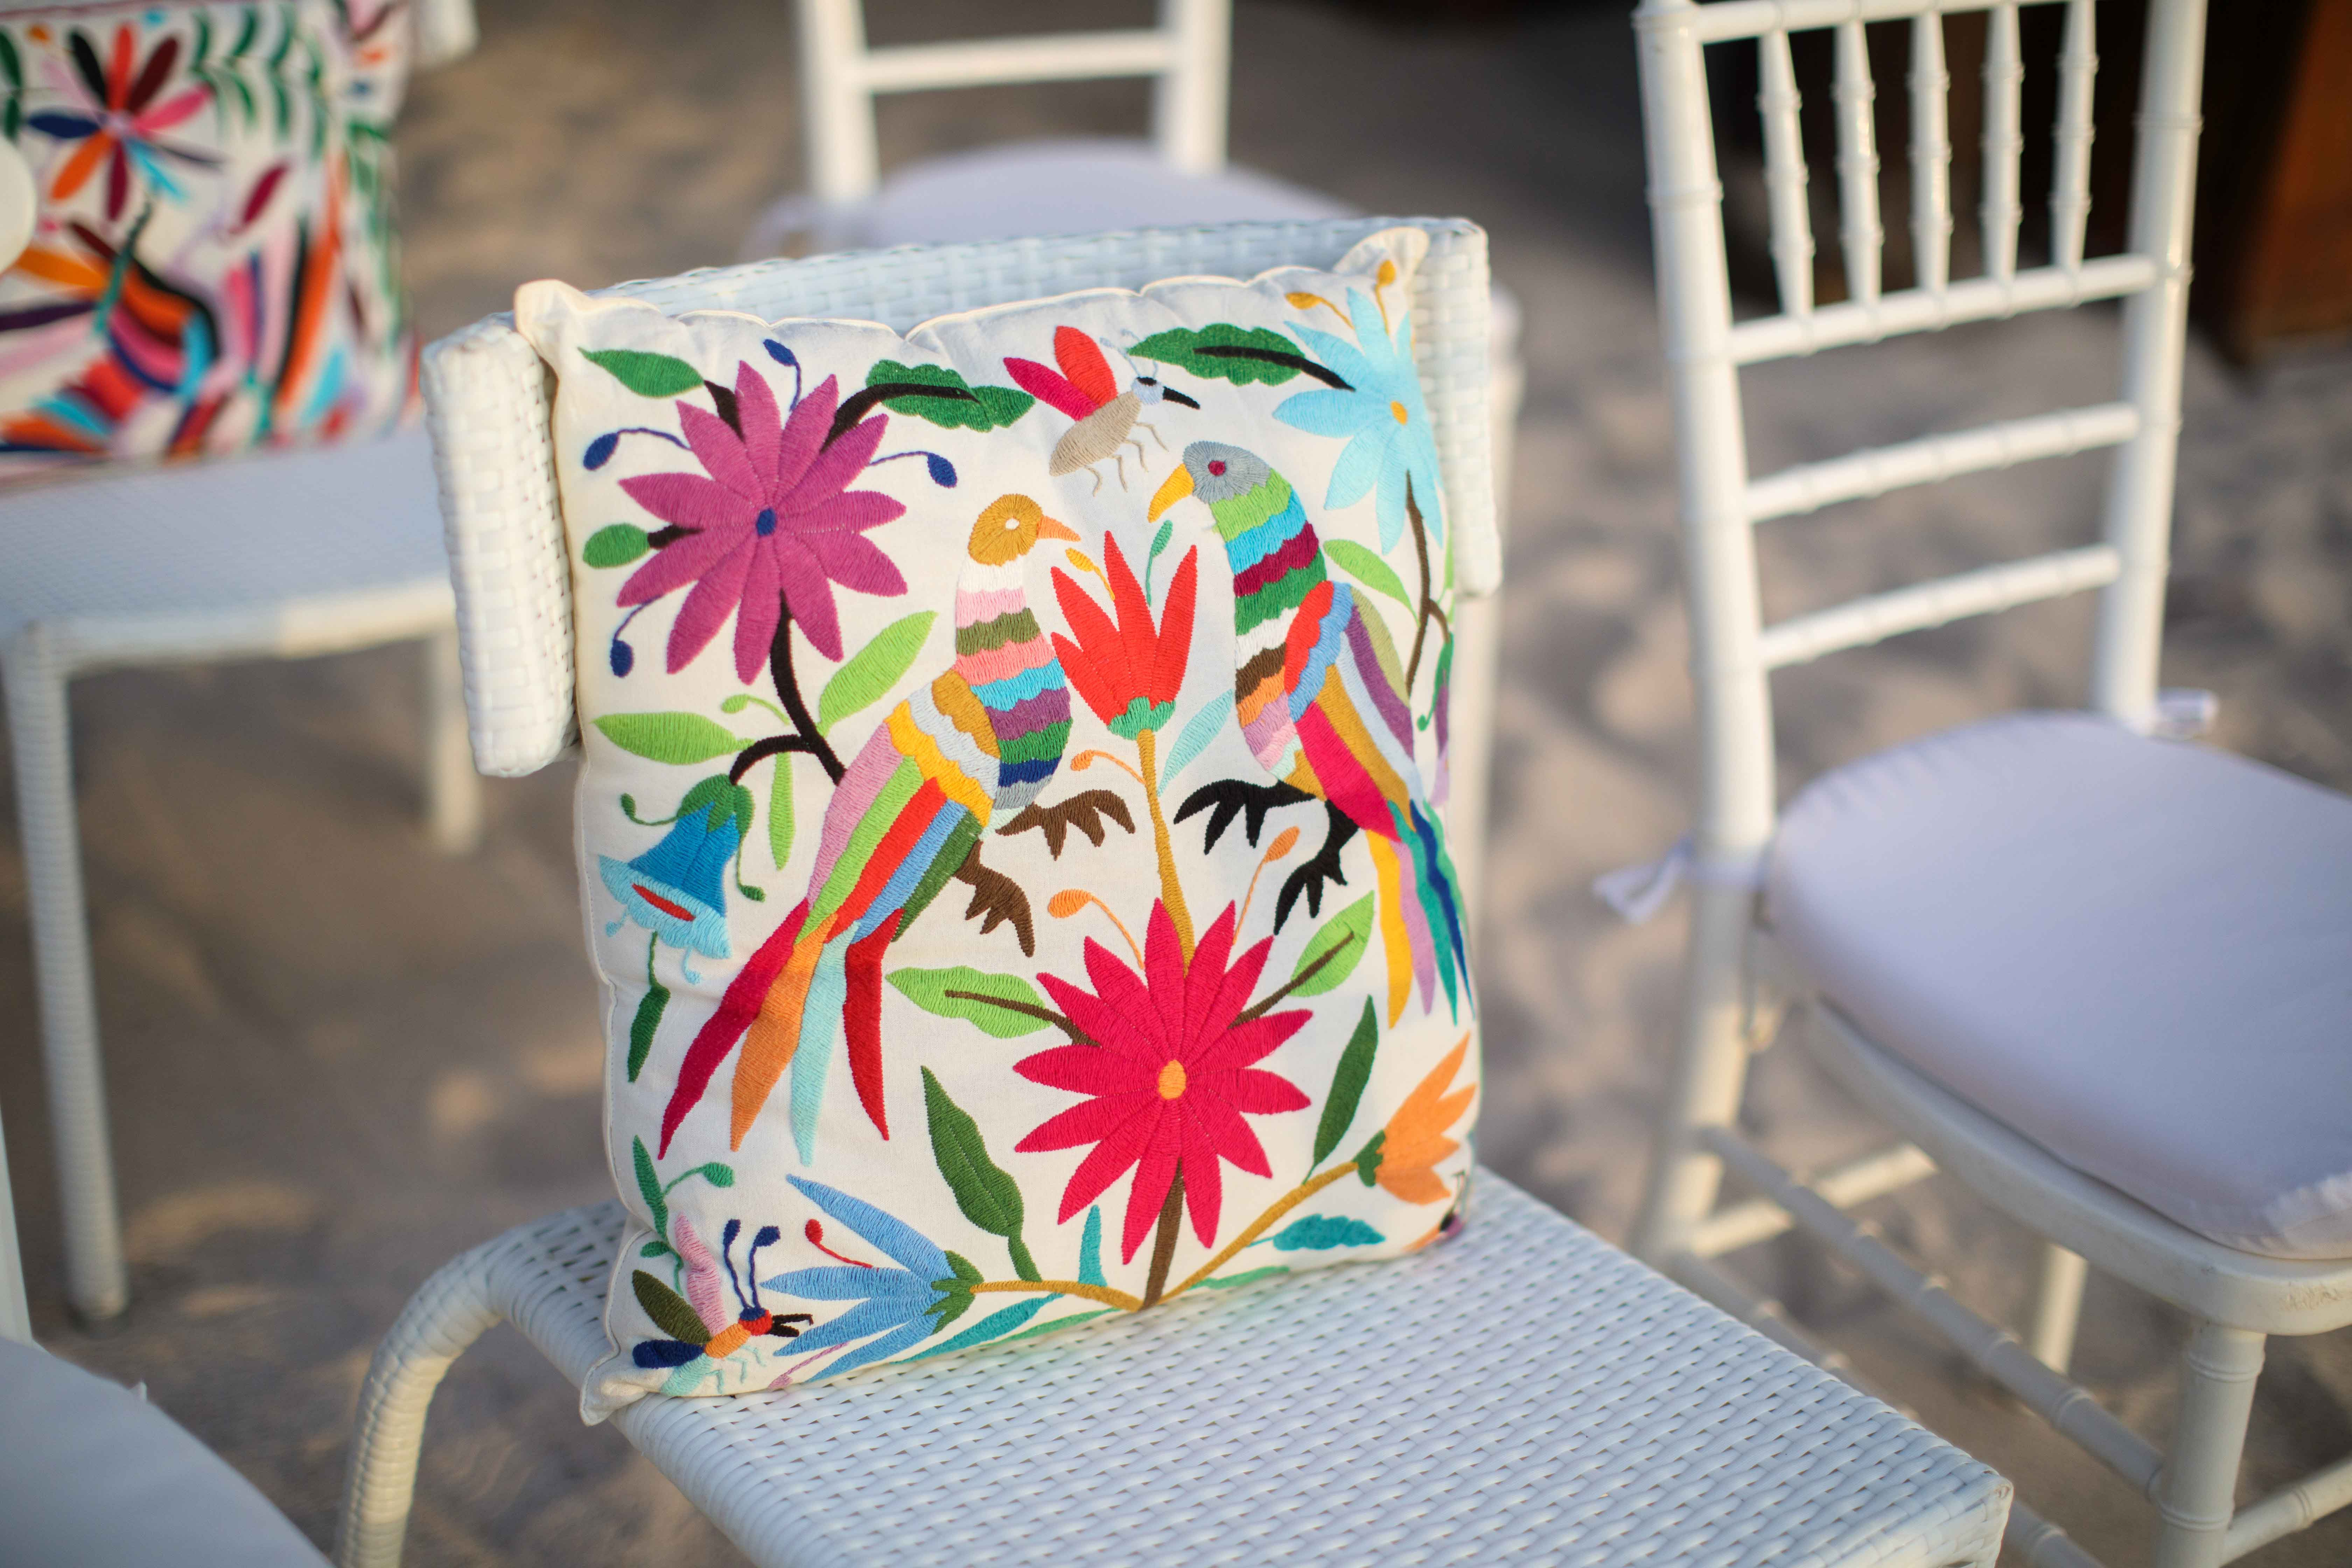 Brightly colored pillow fun Mexican print wedding ceremony ideas